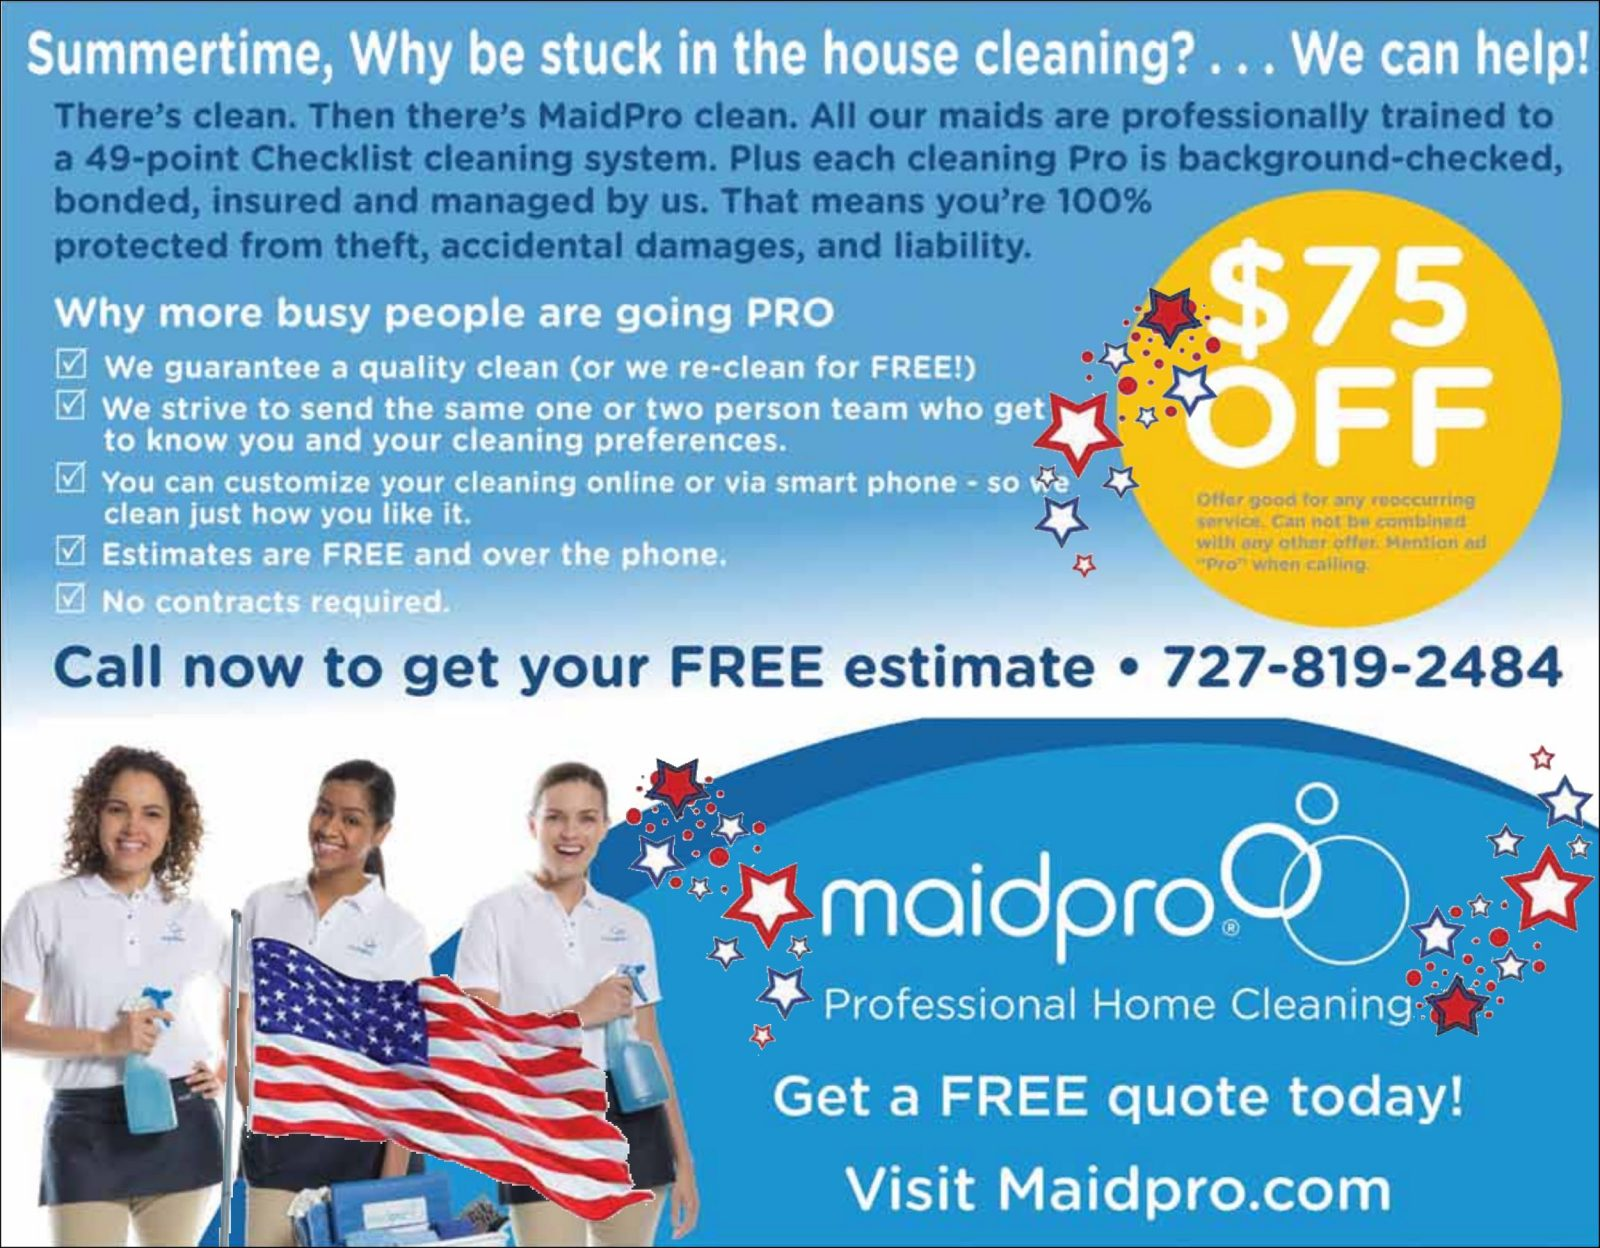 Maid Pro - Boomerz of America June 2019